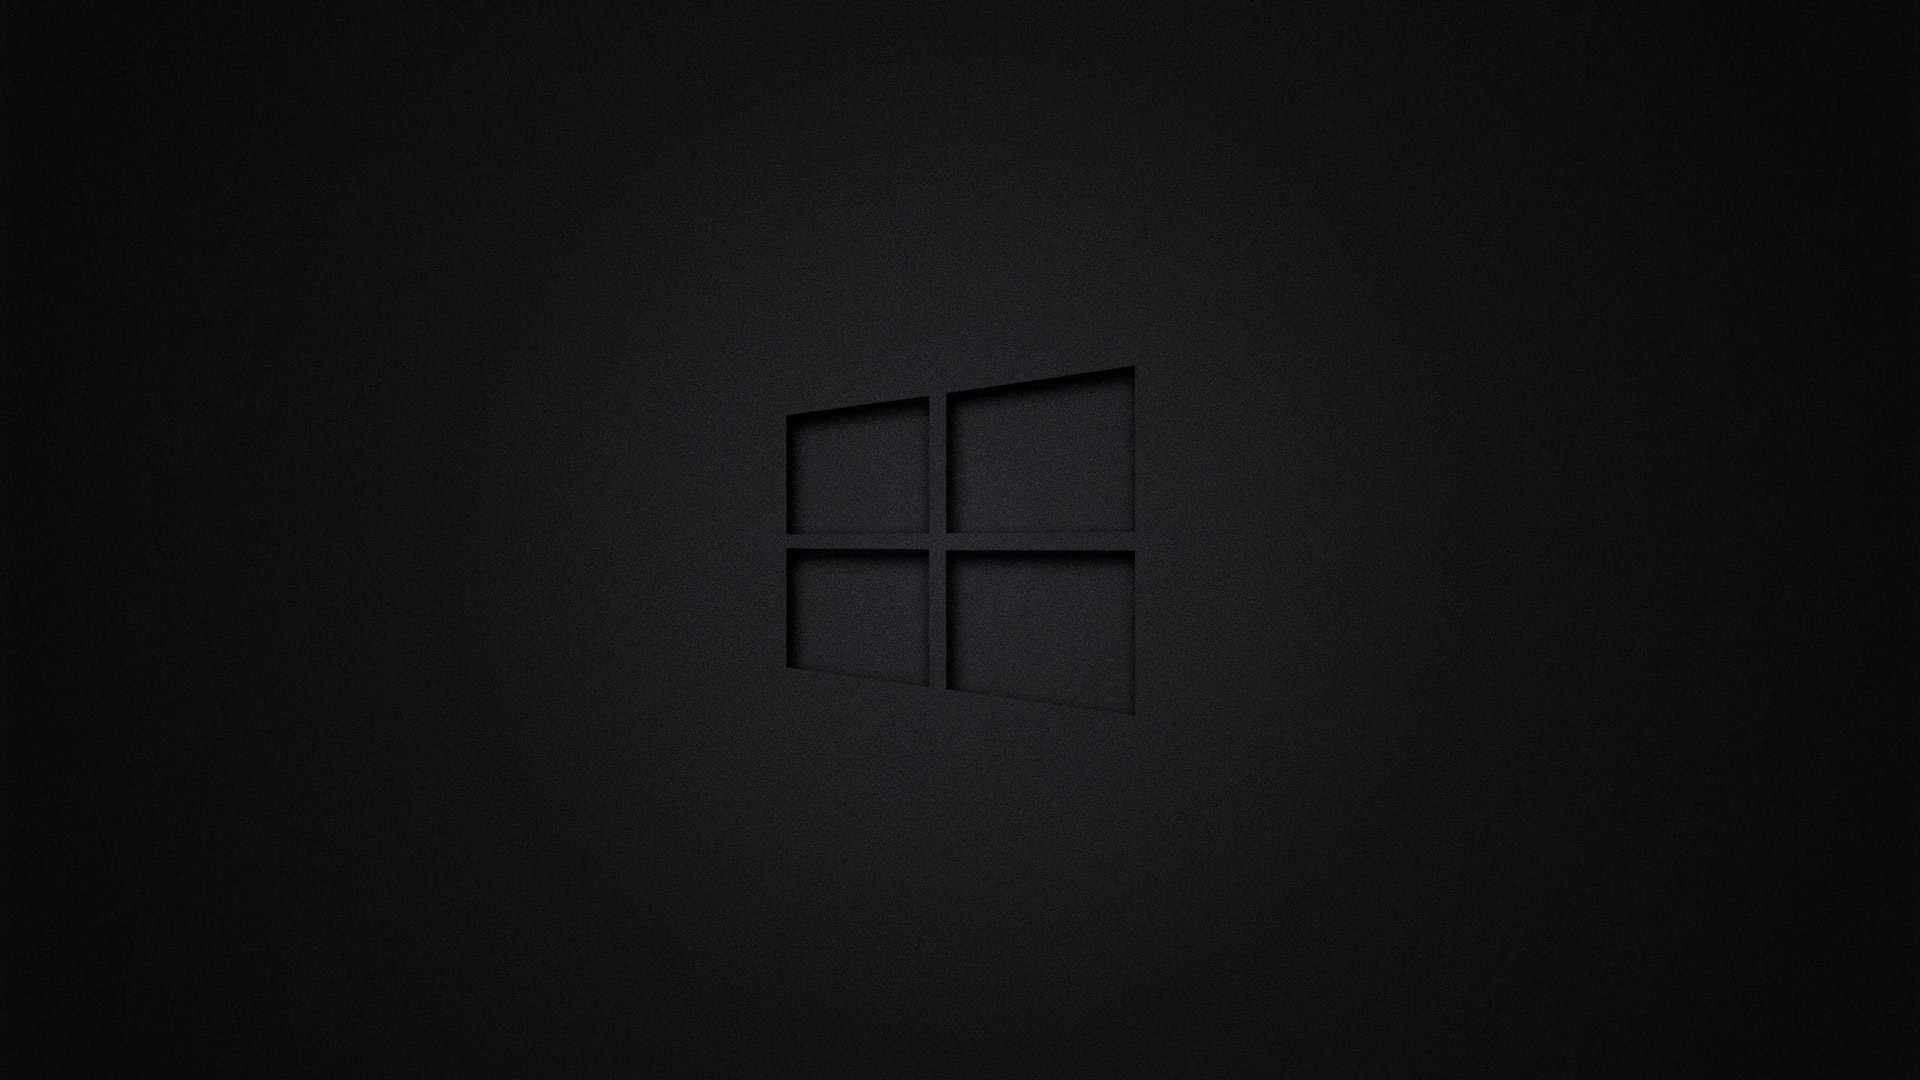 Windows 10 Dark Wallpaper